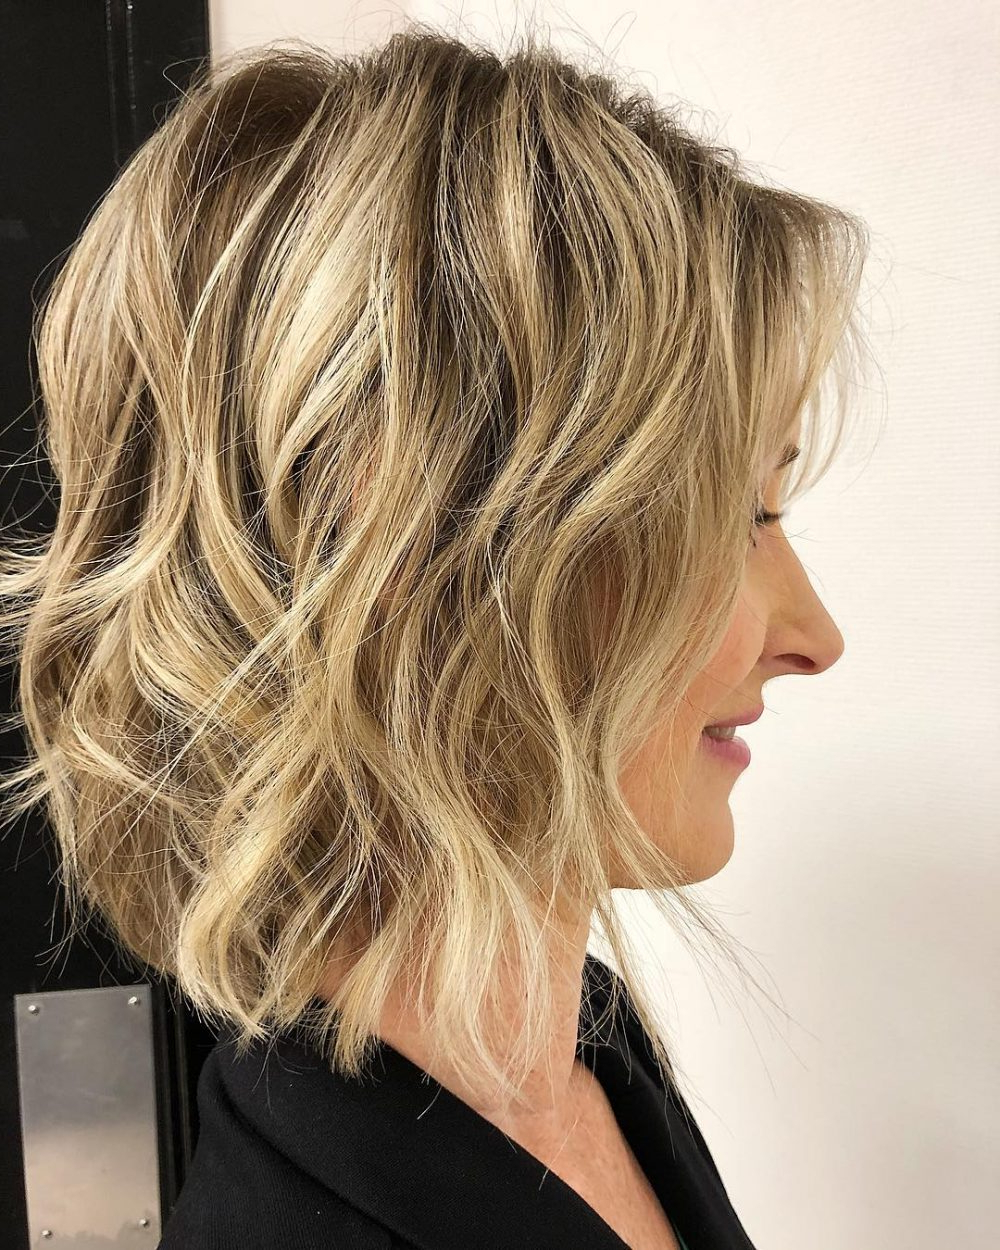 43 Perfect Short Hairstyles For Fine Hair In 2018 For Angled Brunette Bob Hairstyles With Messy Curls (View 24 of 25)